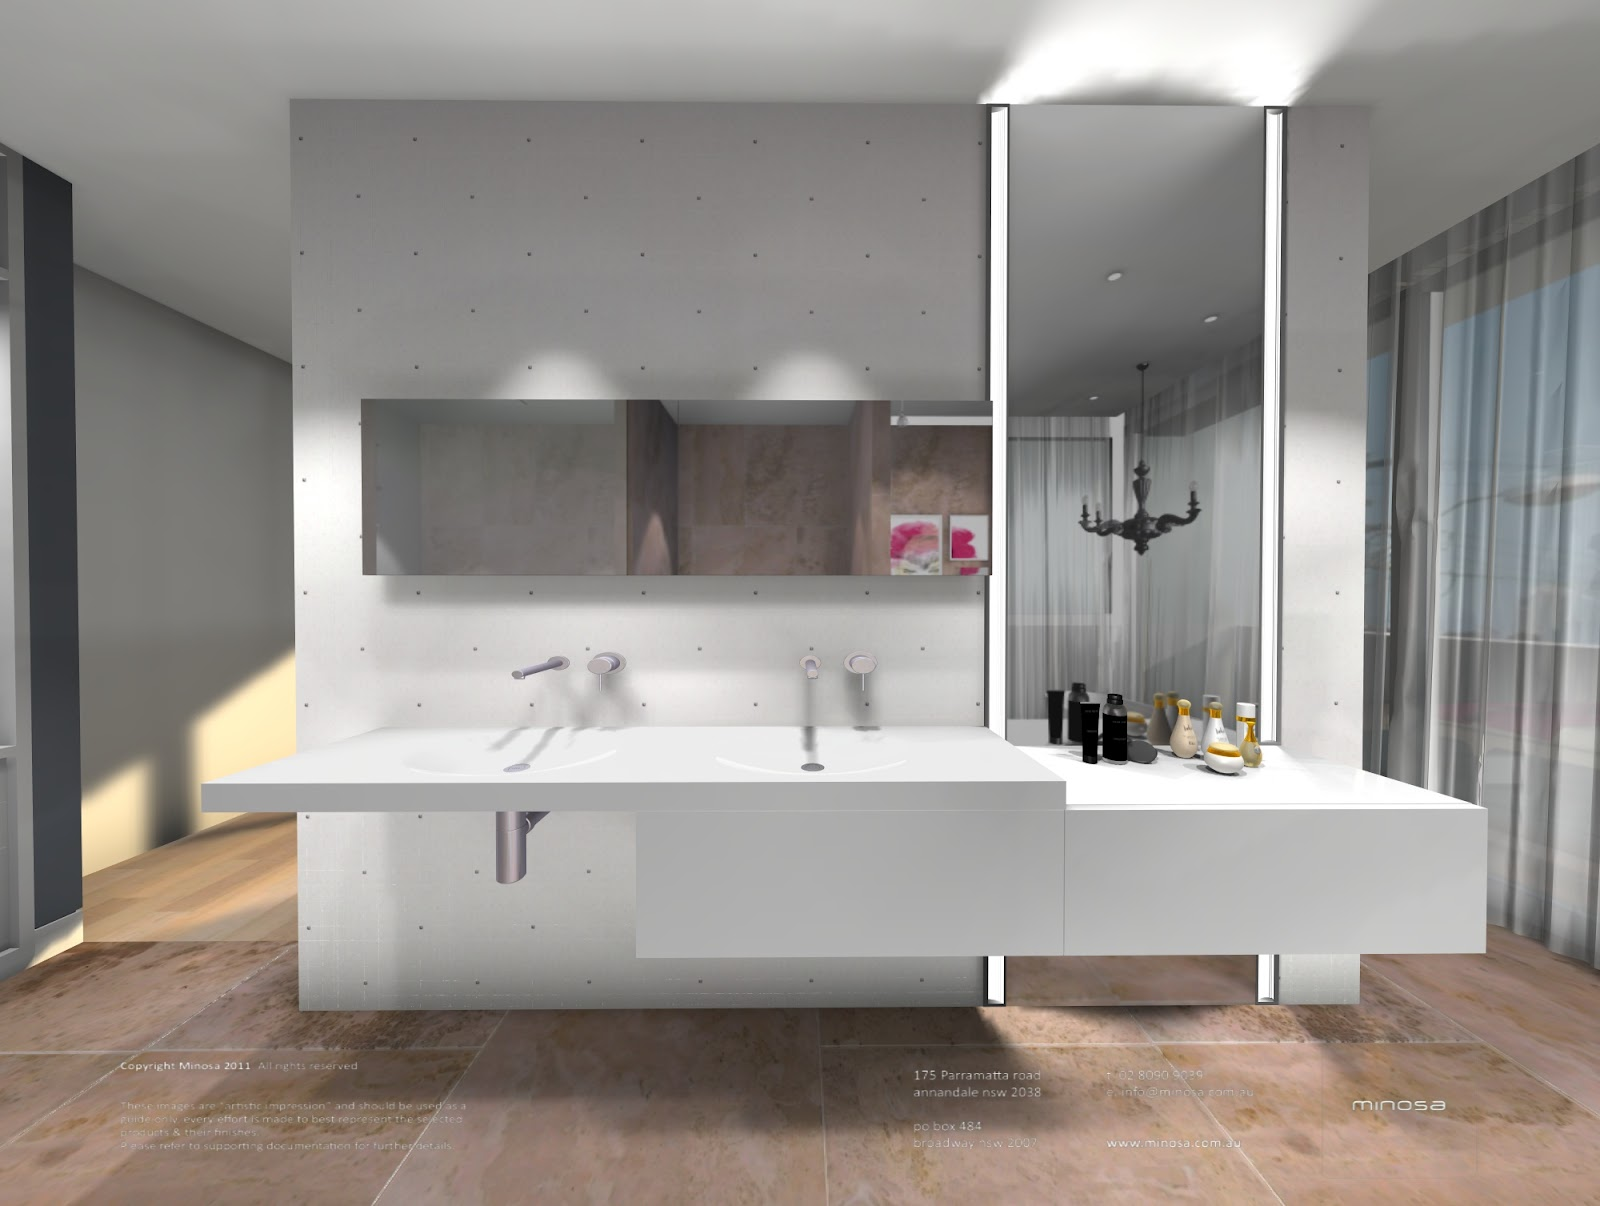 Minosa Modern Bathroom Products Focus On Design